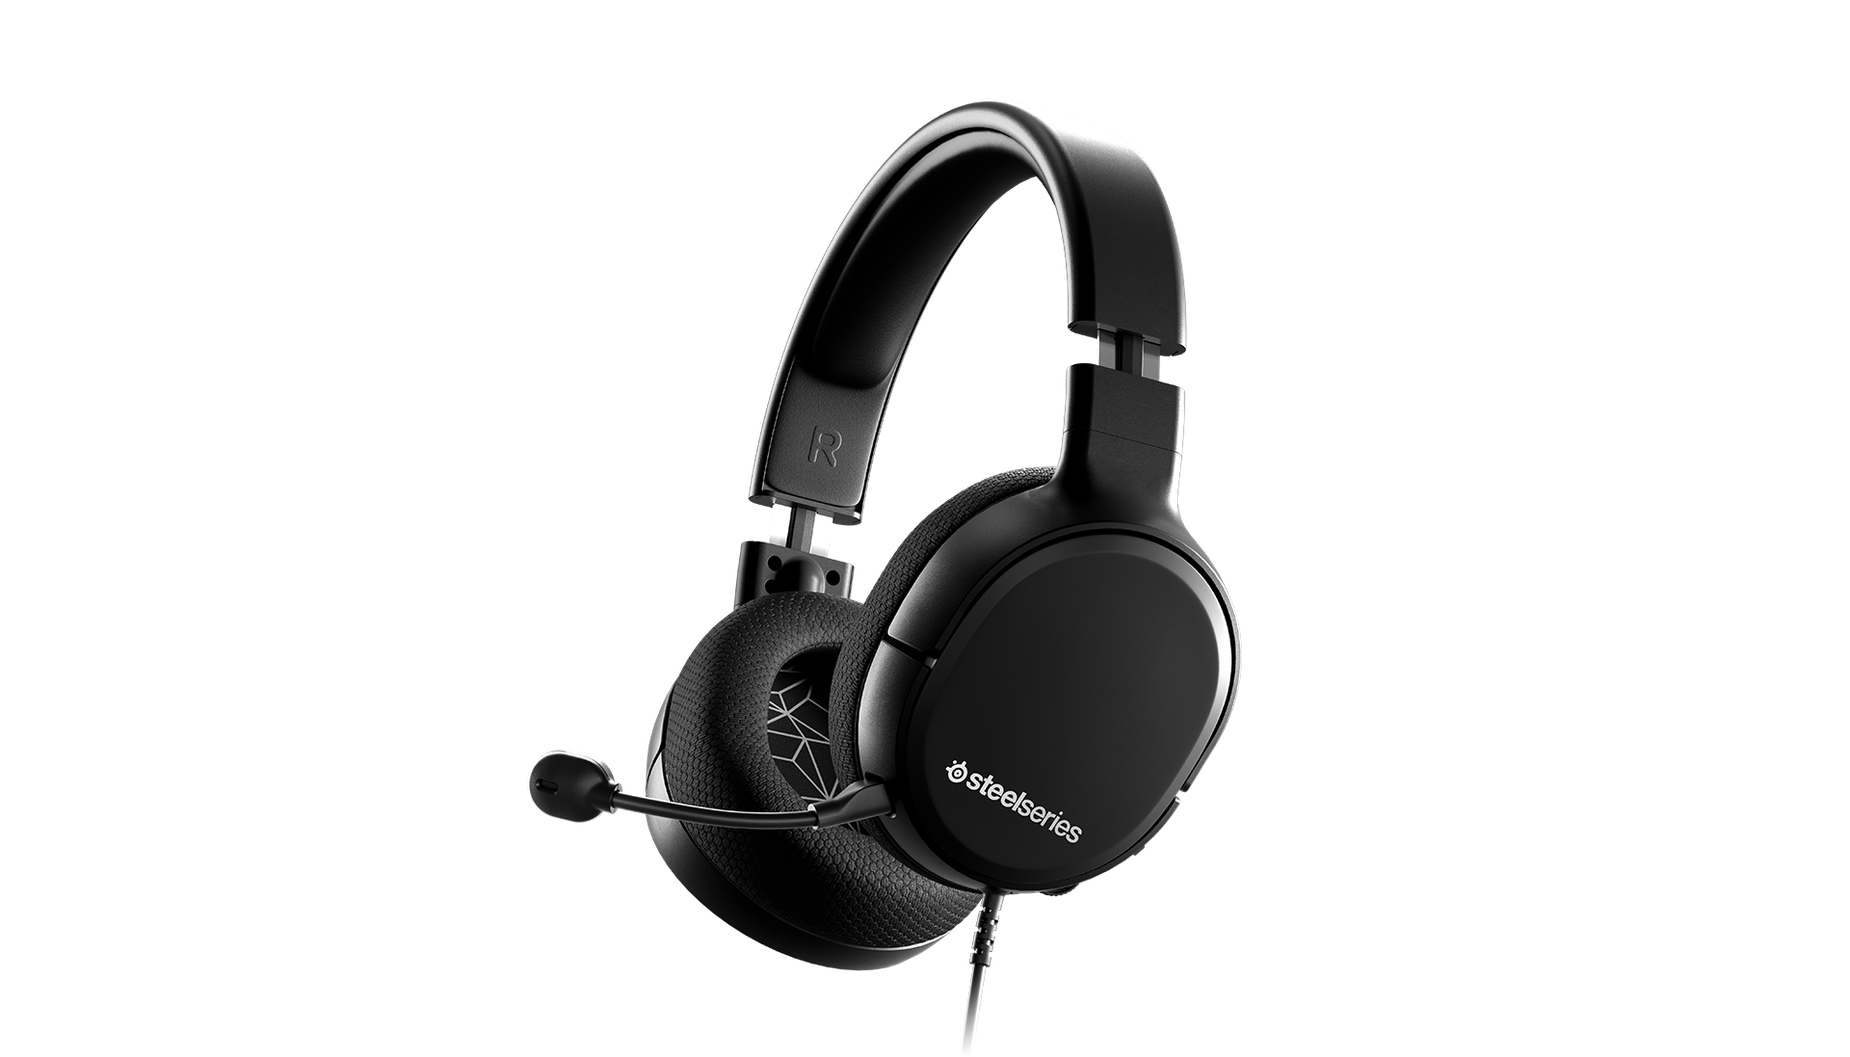 Arctis 1 gaming headset angled with microphone attached.